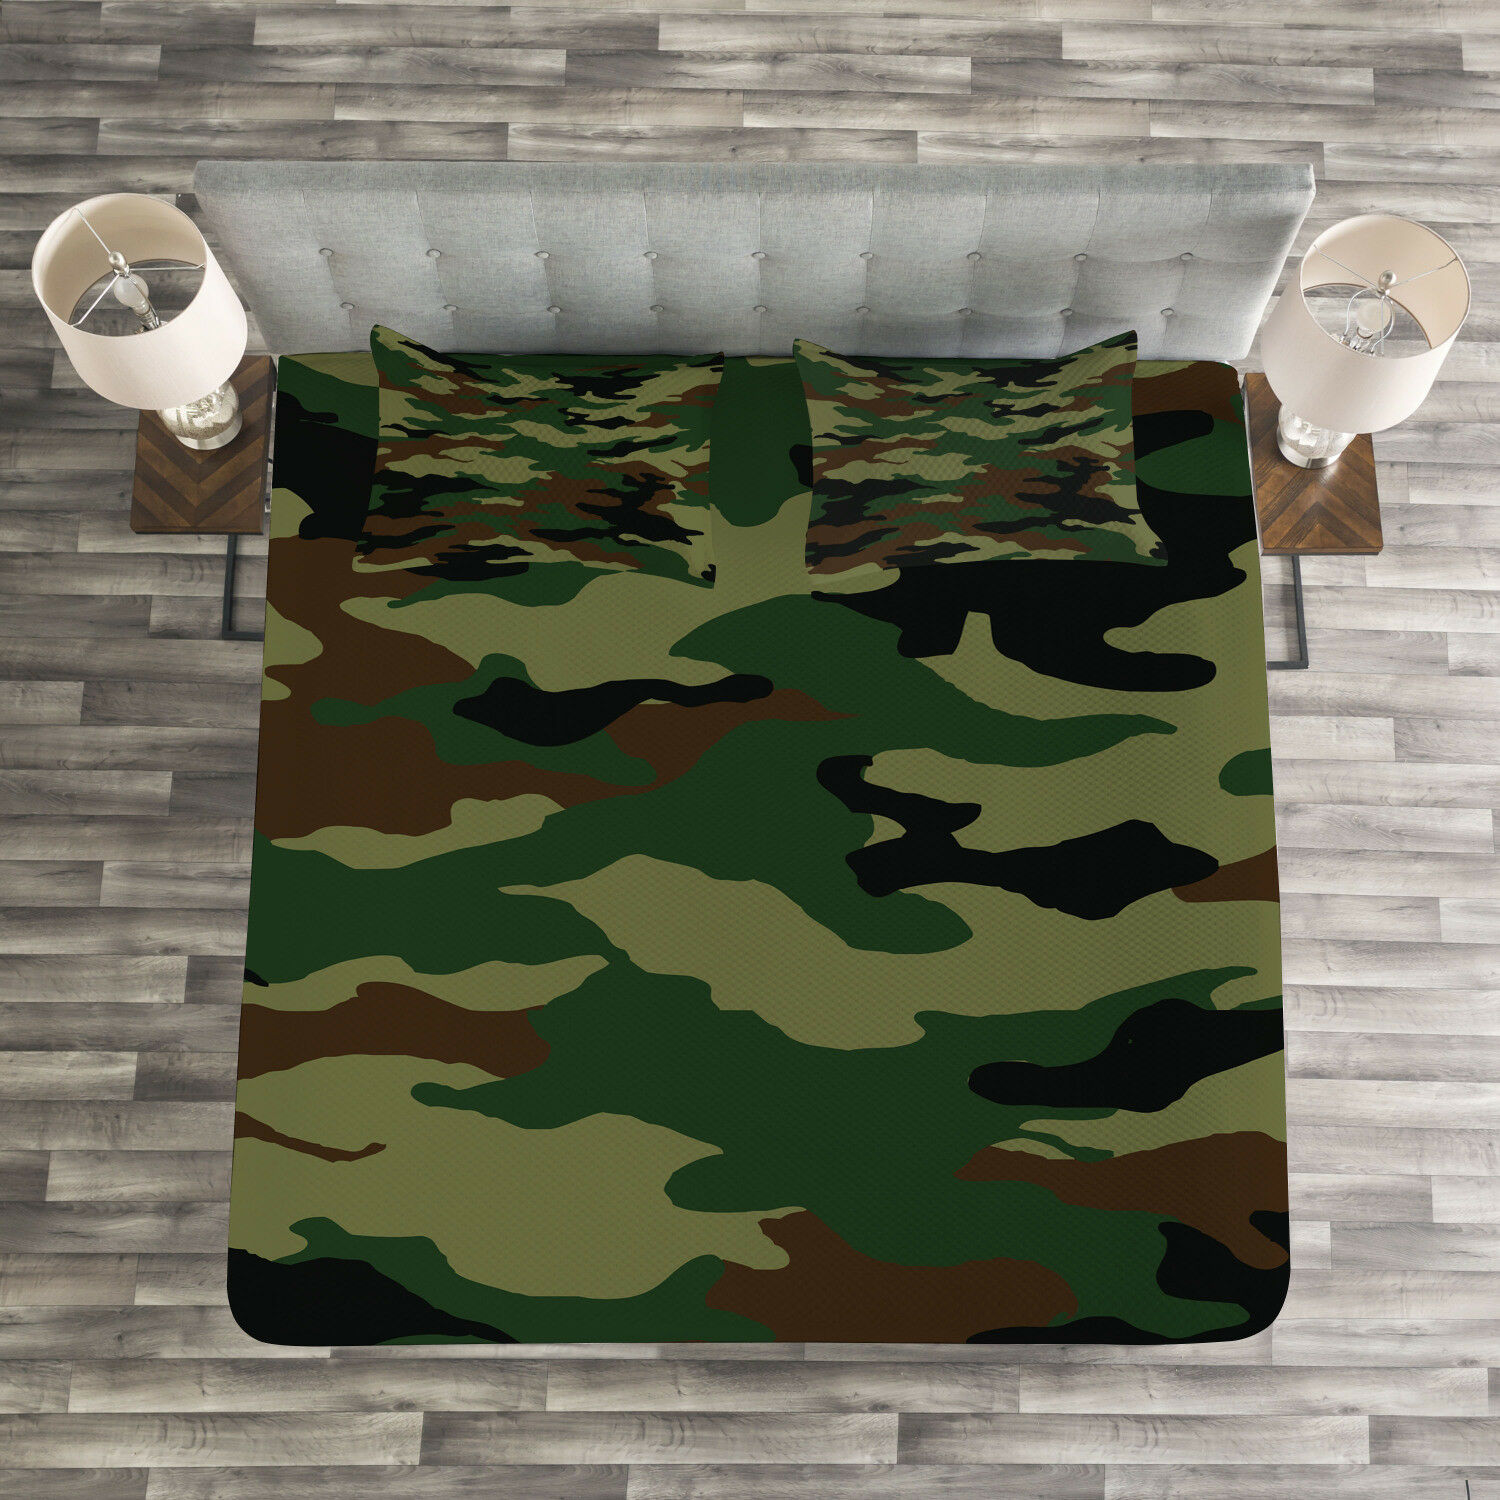 Camo Quilted Bedspread & Pillow Shams Set, Uniform Inspired Fashion Print